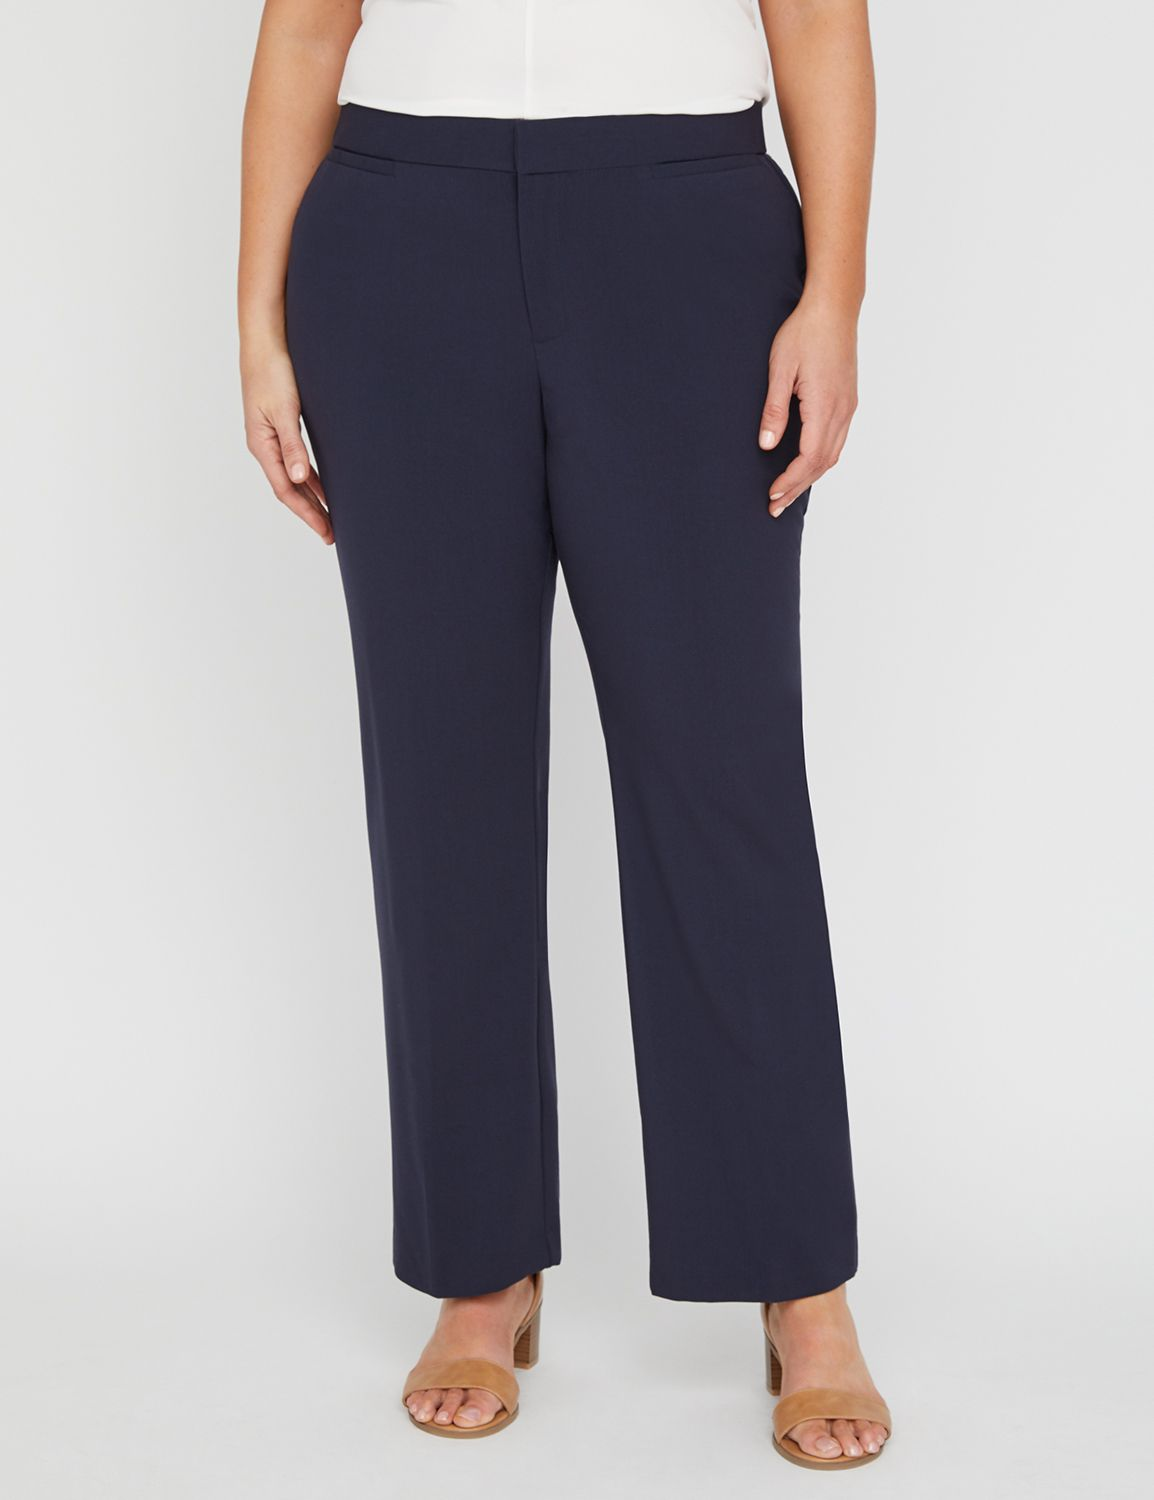 Right Fit Pant (Moderately Curvy) Right Fit Pant (Moderately Curvy) MP-300043663